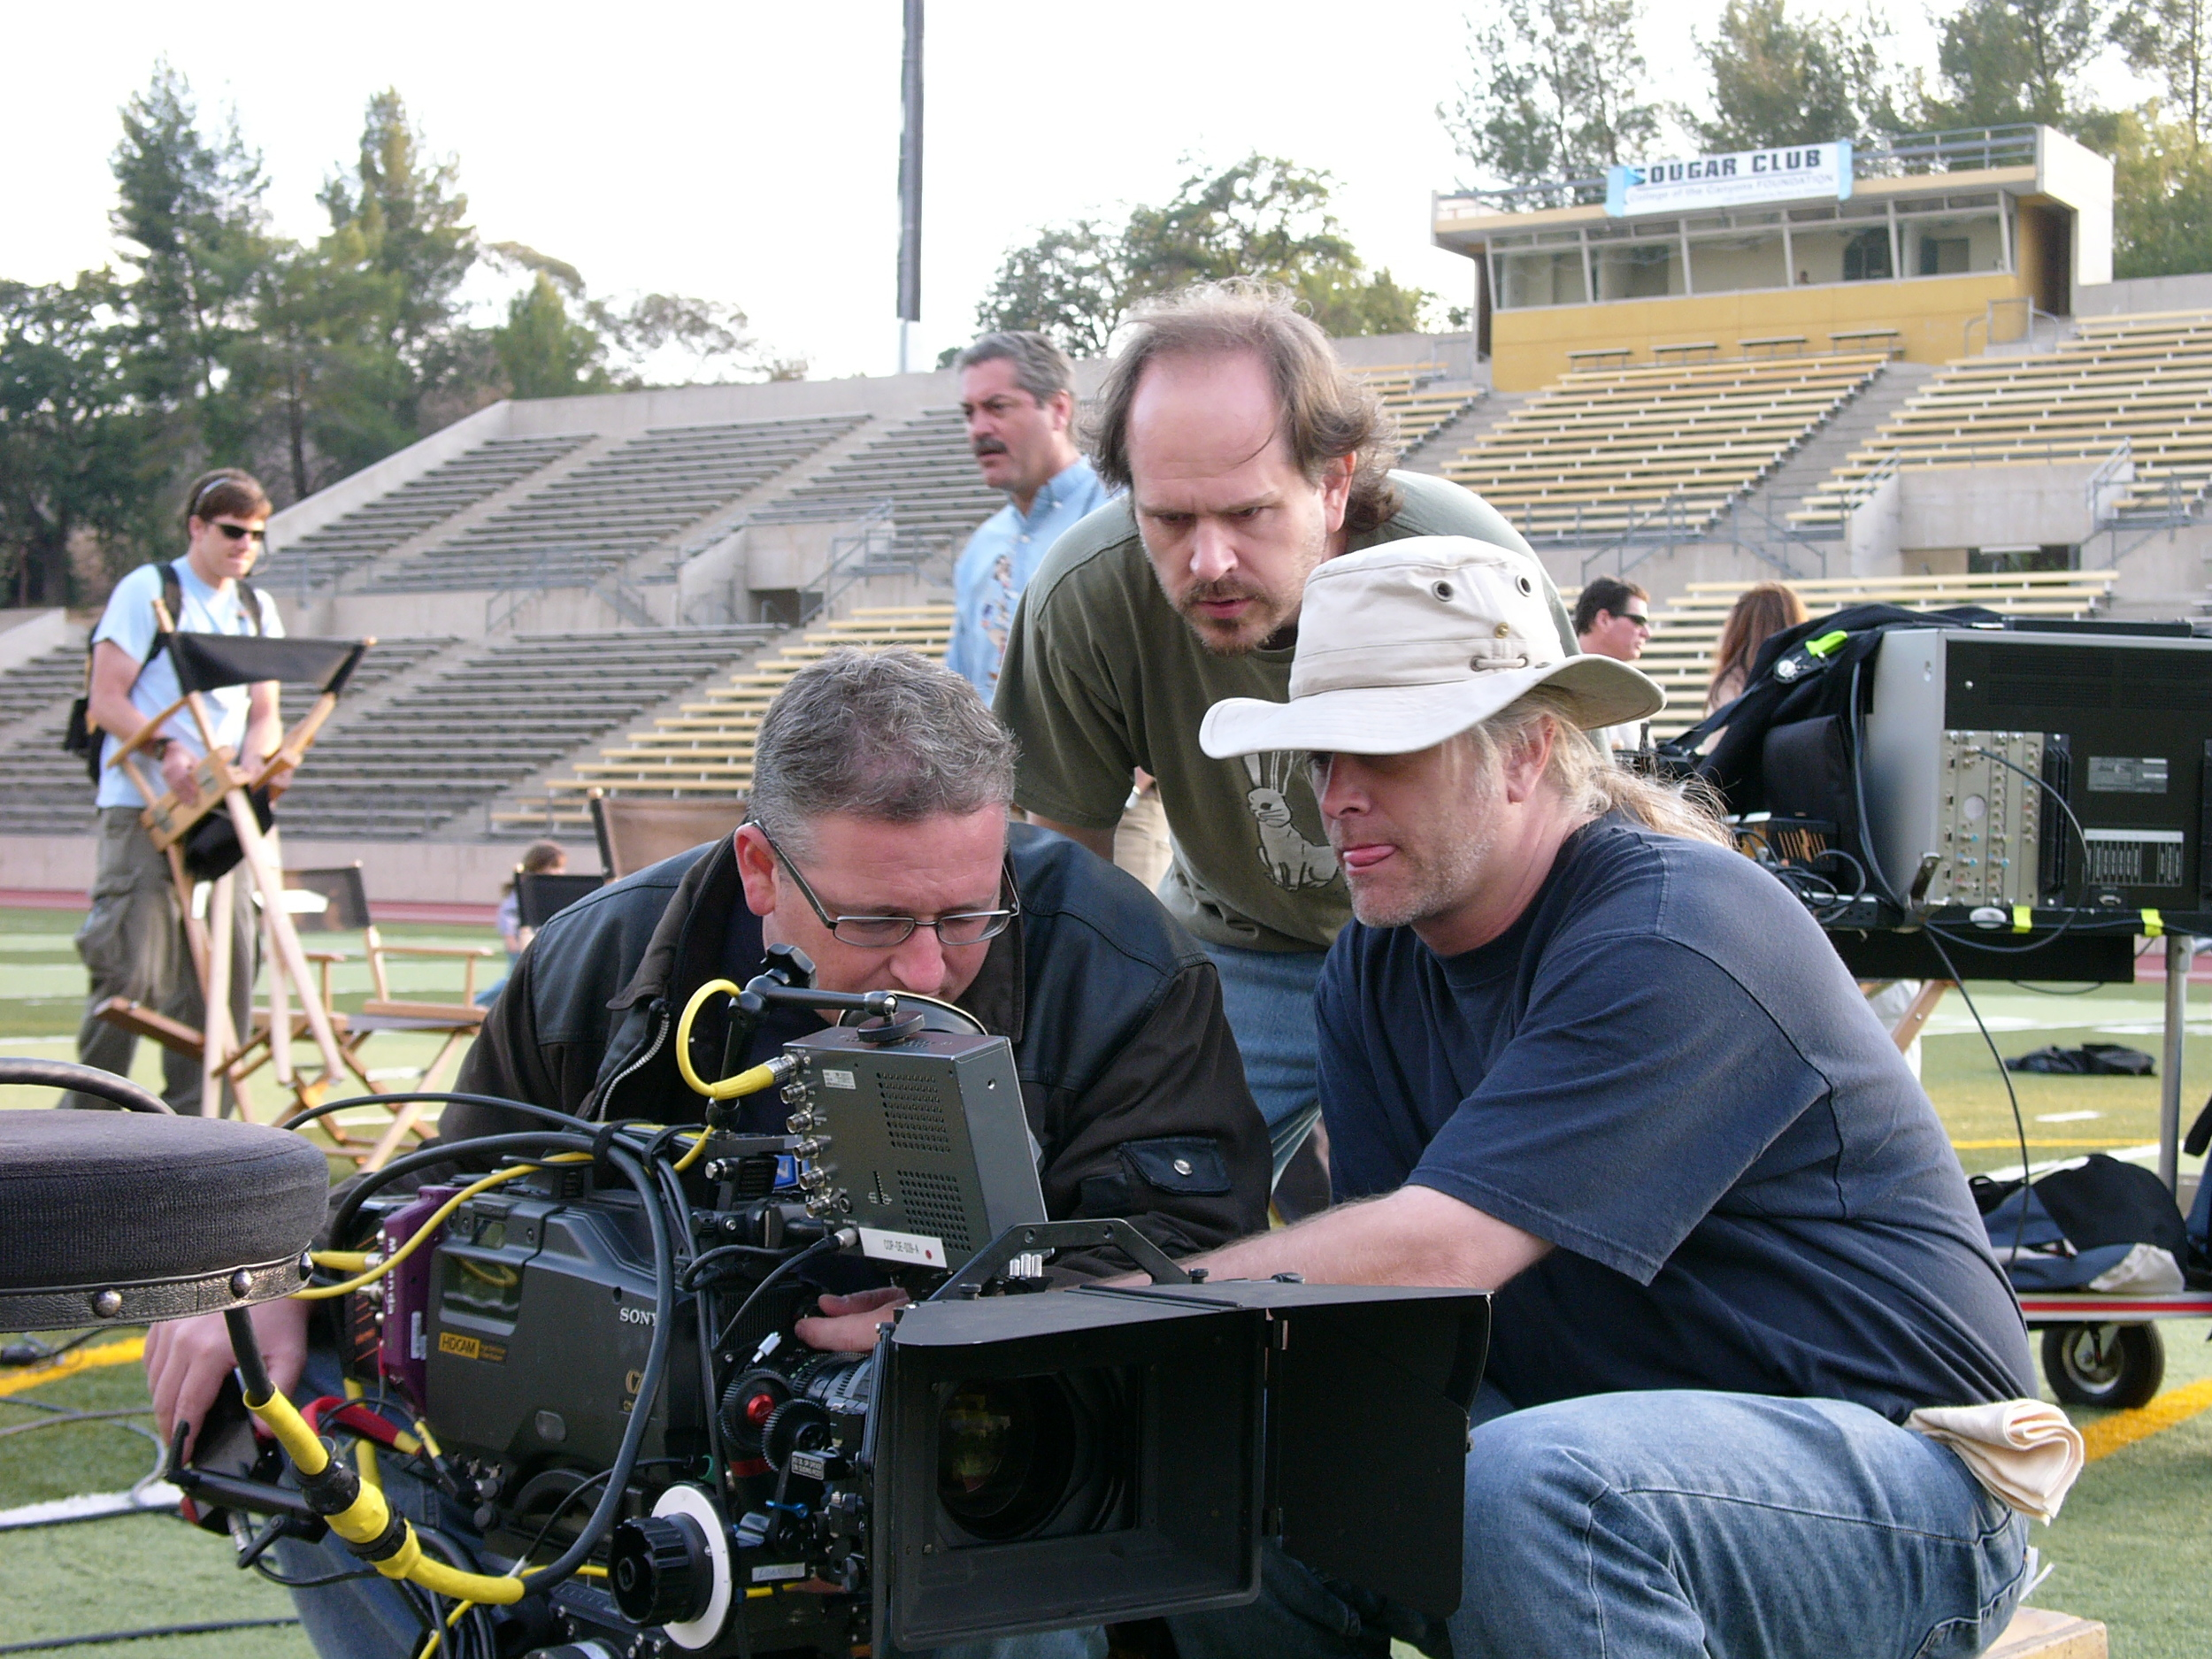 With D.P. Guy Livneh and First Camera Erik Emerson on Kids in America